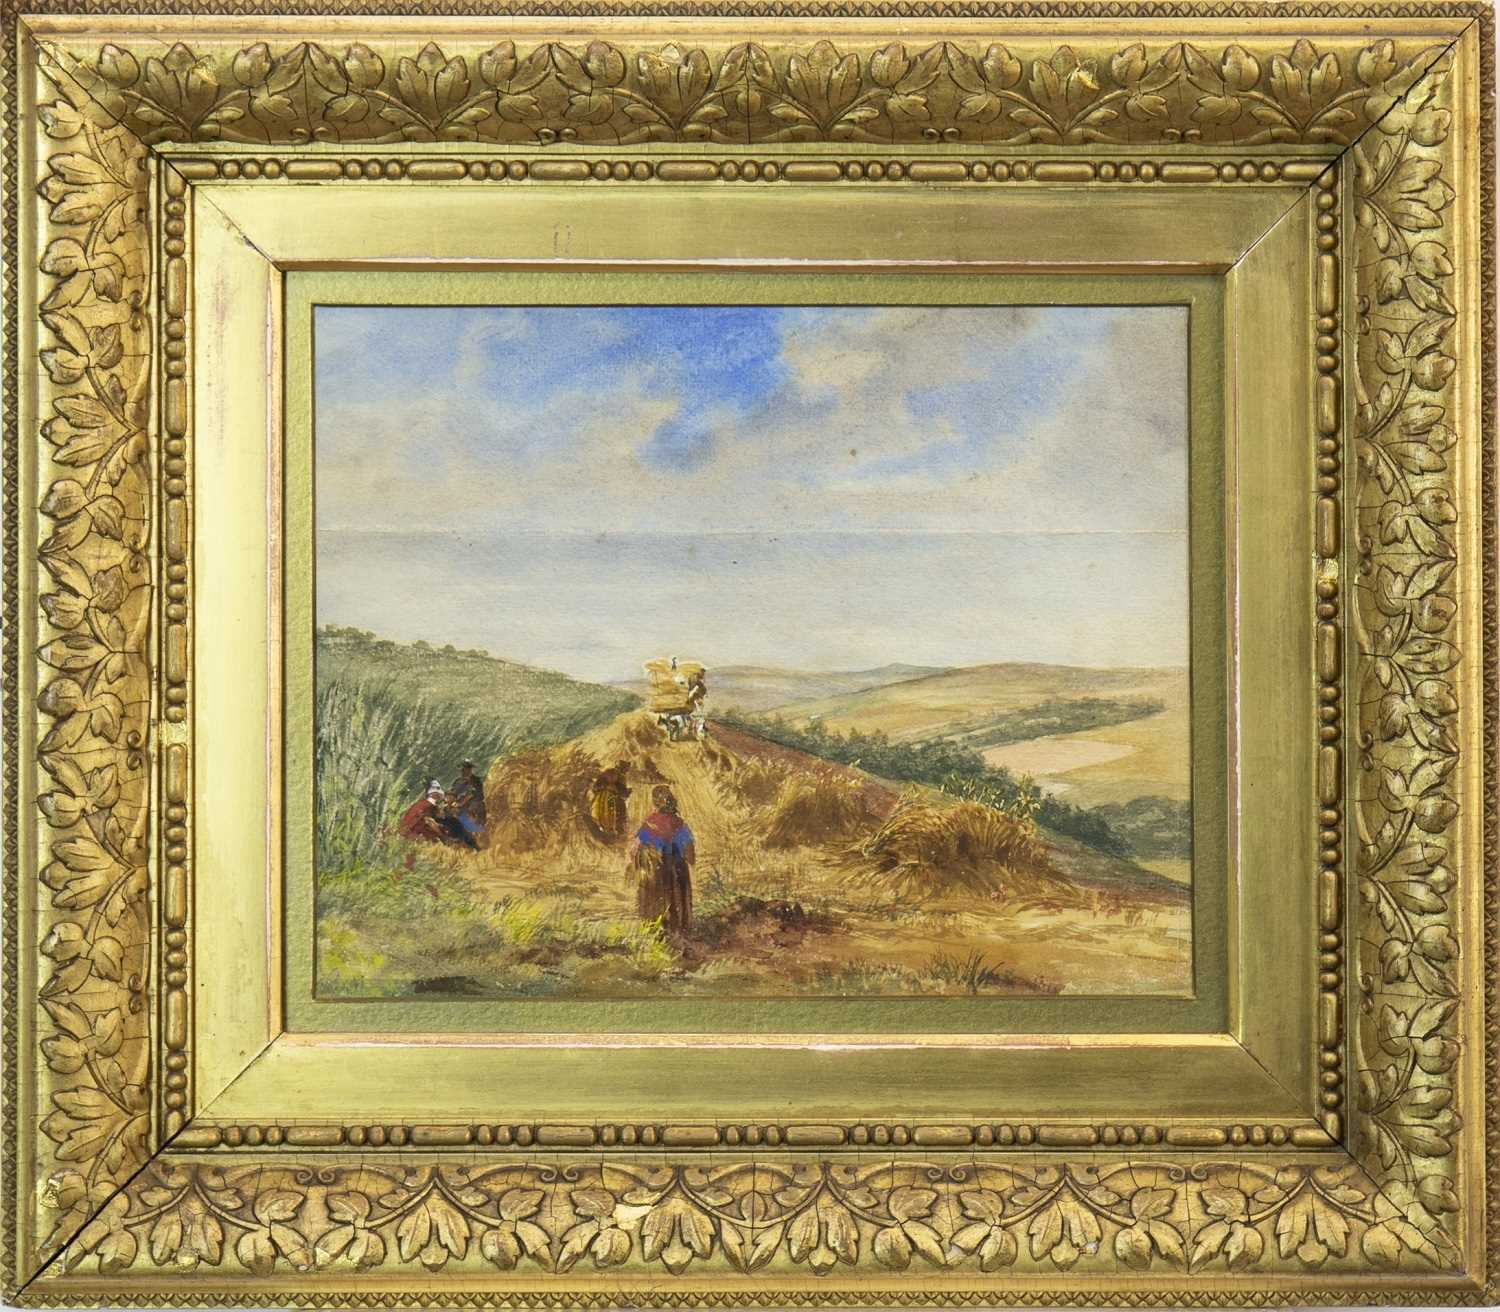 Lot 422-A RARE WATERCOLOUR SKETCH OF AN EAST LOTHIAN HARVESTING SCENE, BY WILLIAM DARLING MACKAY